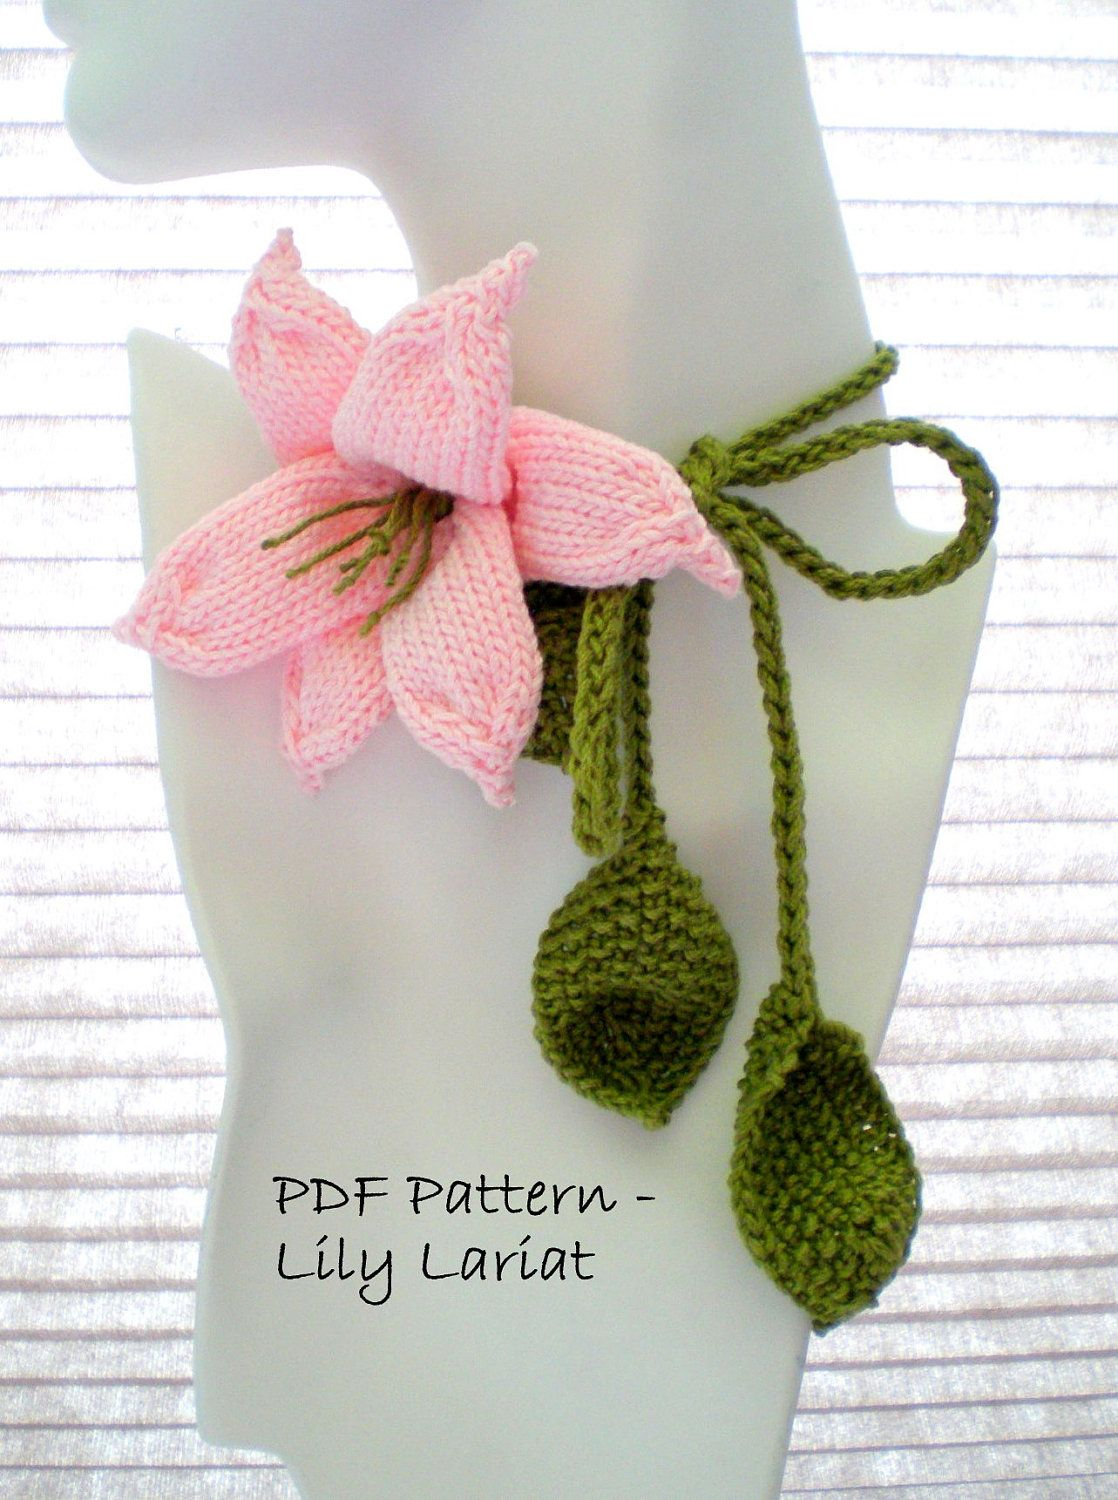 Pdf knitting pattern knit jewelry lily lariat knitting pdf knitting pattern knit jewelry lily lariat bankloansurffo Images